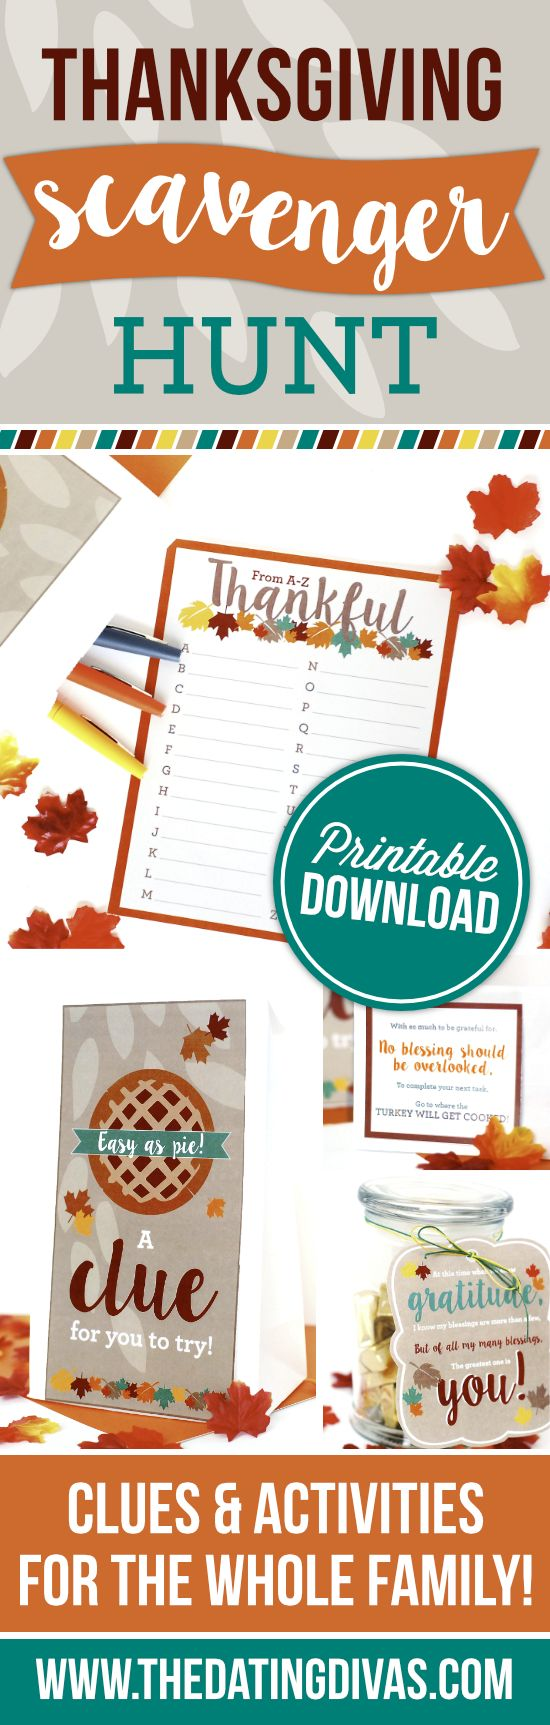 Clues and activities for a Thanksgiving Scavenger Hunt the whole family can enjoy! Each stop on the scavenger hunt includes a Thanksgiving-related task - my family will love this!